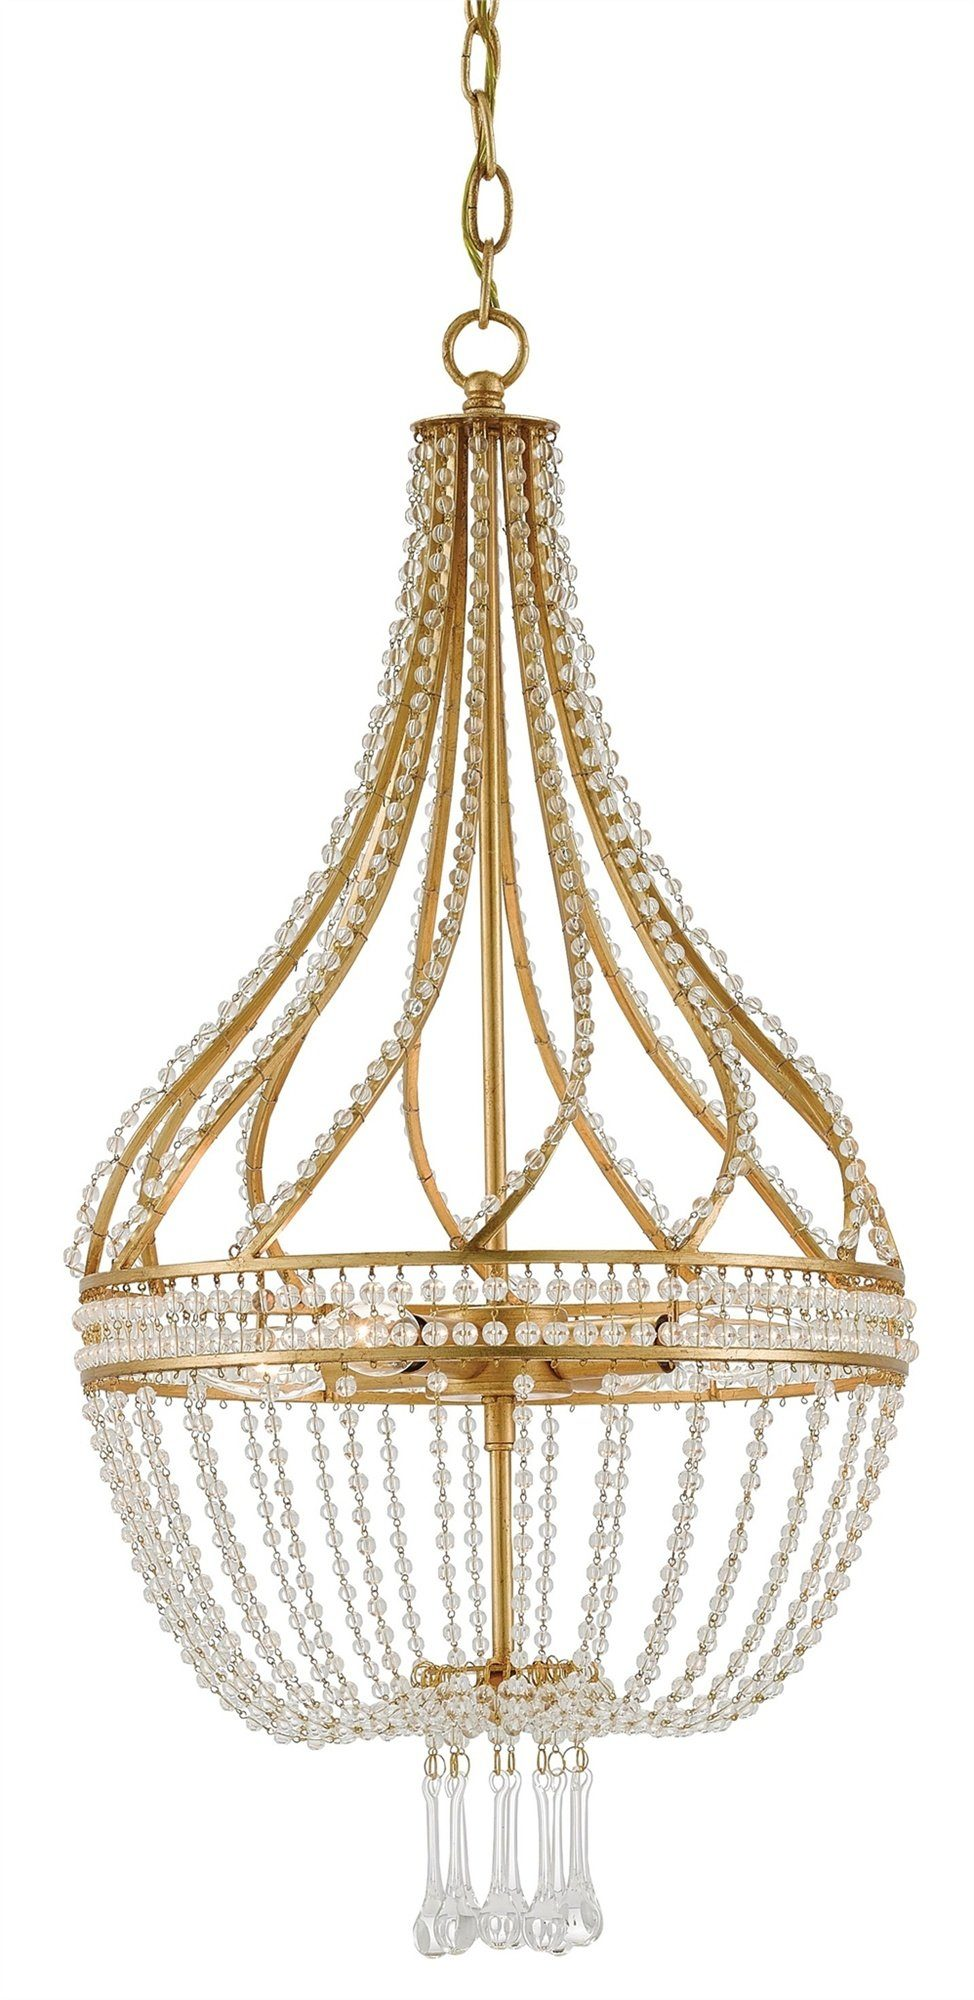 Currey and Company Inganue Chandelier 9000-0061 - LOVECUP